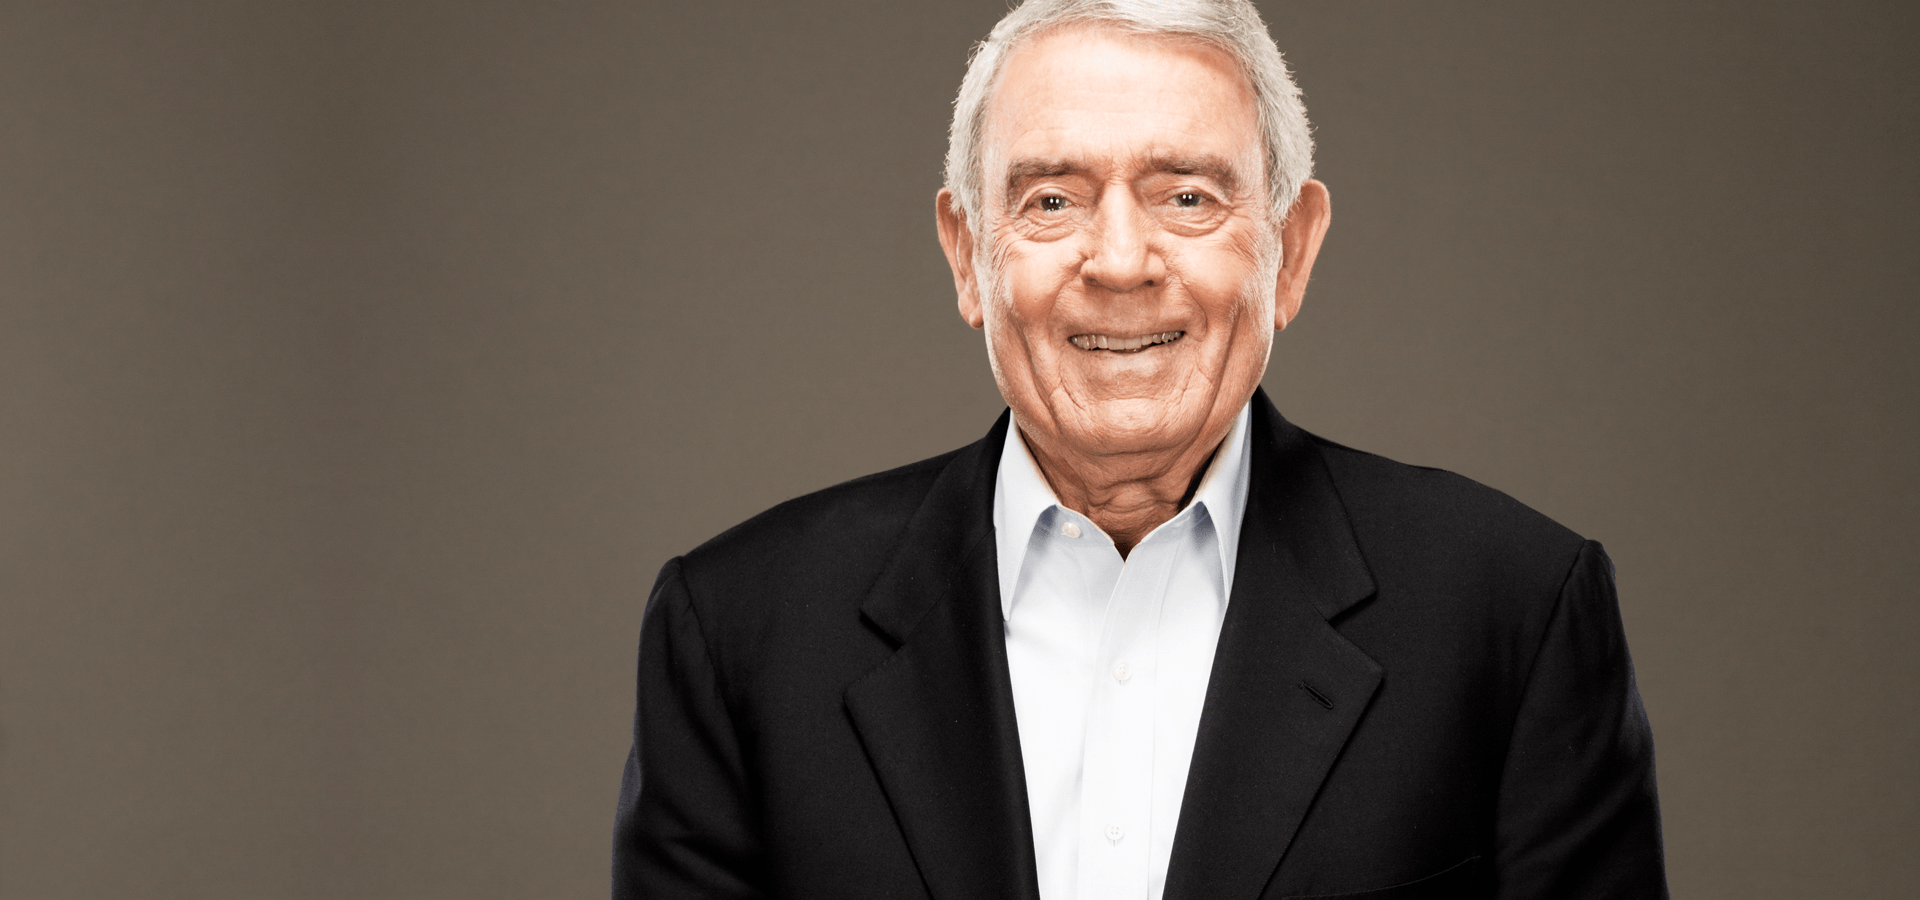 The Big Interview with Dan Rather – Season 2